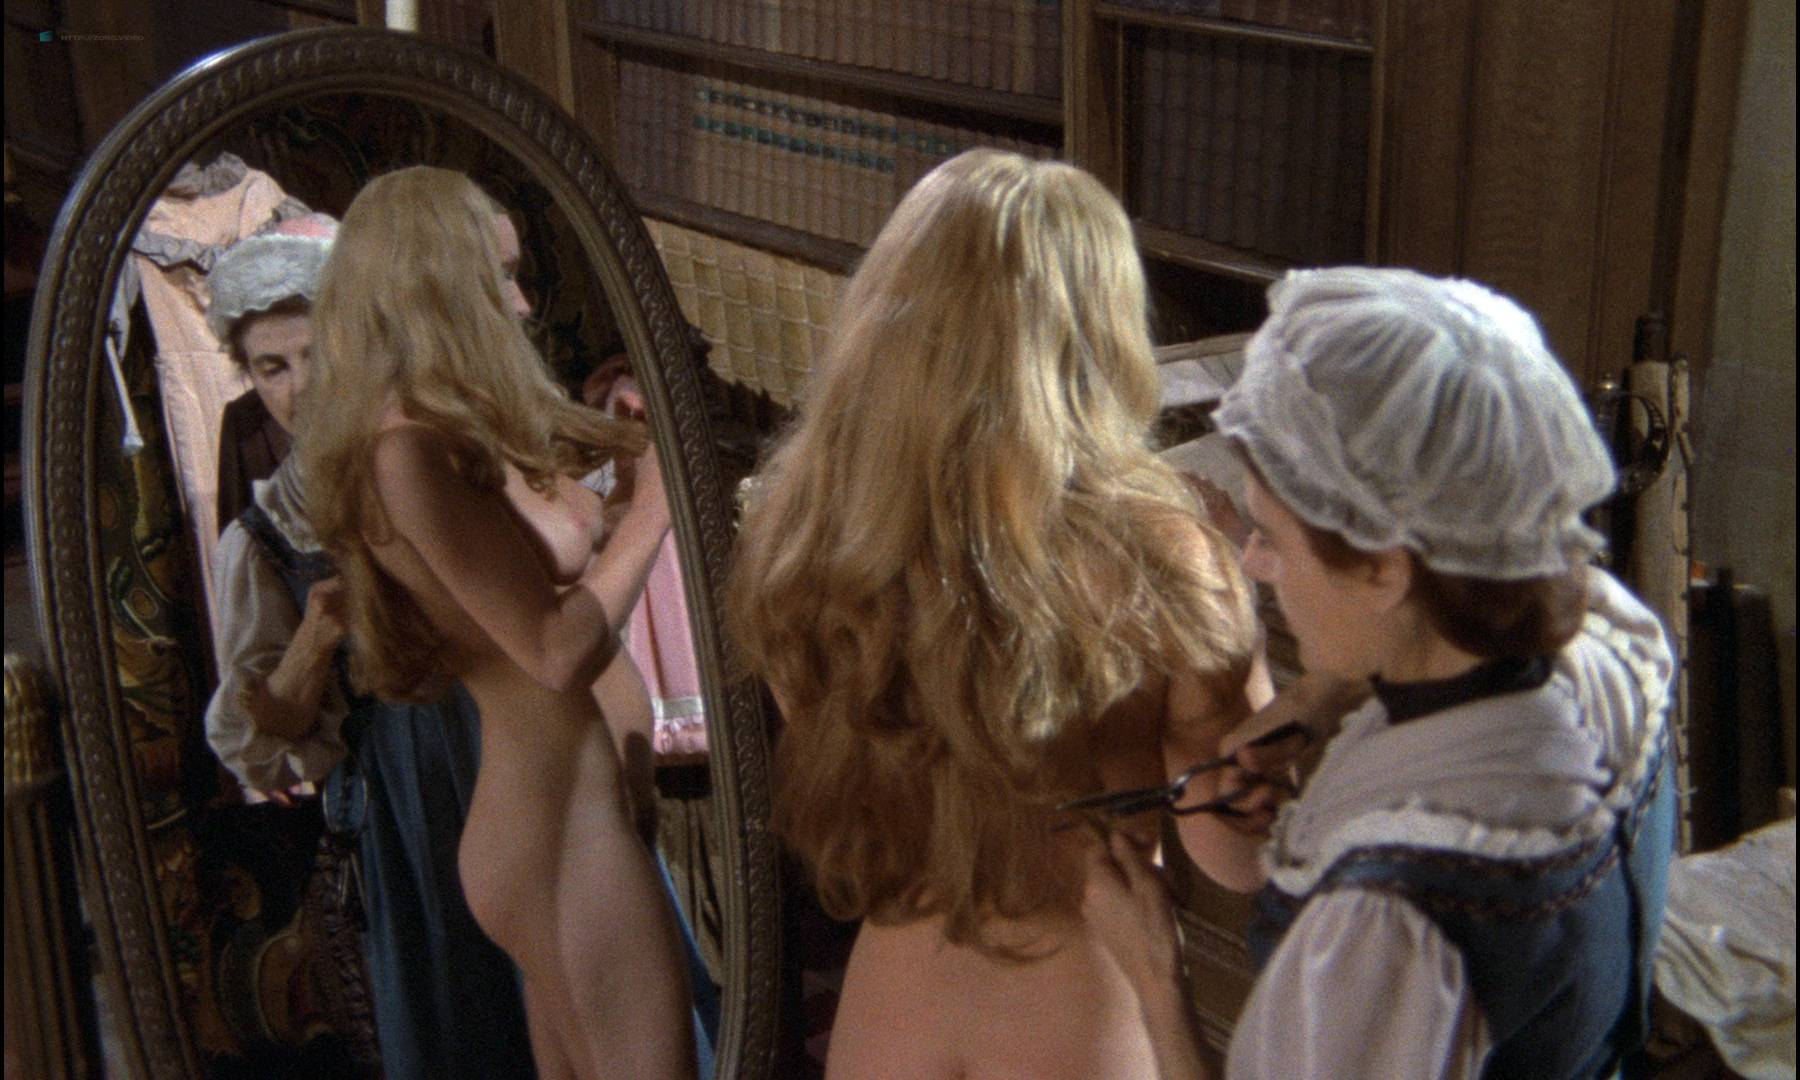 Gillian Hills nude topless Virginia Wetherell nude full frontal - Demons of the Mind (UK-1972) HD 1080p BluRay (7)